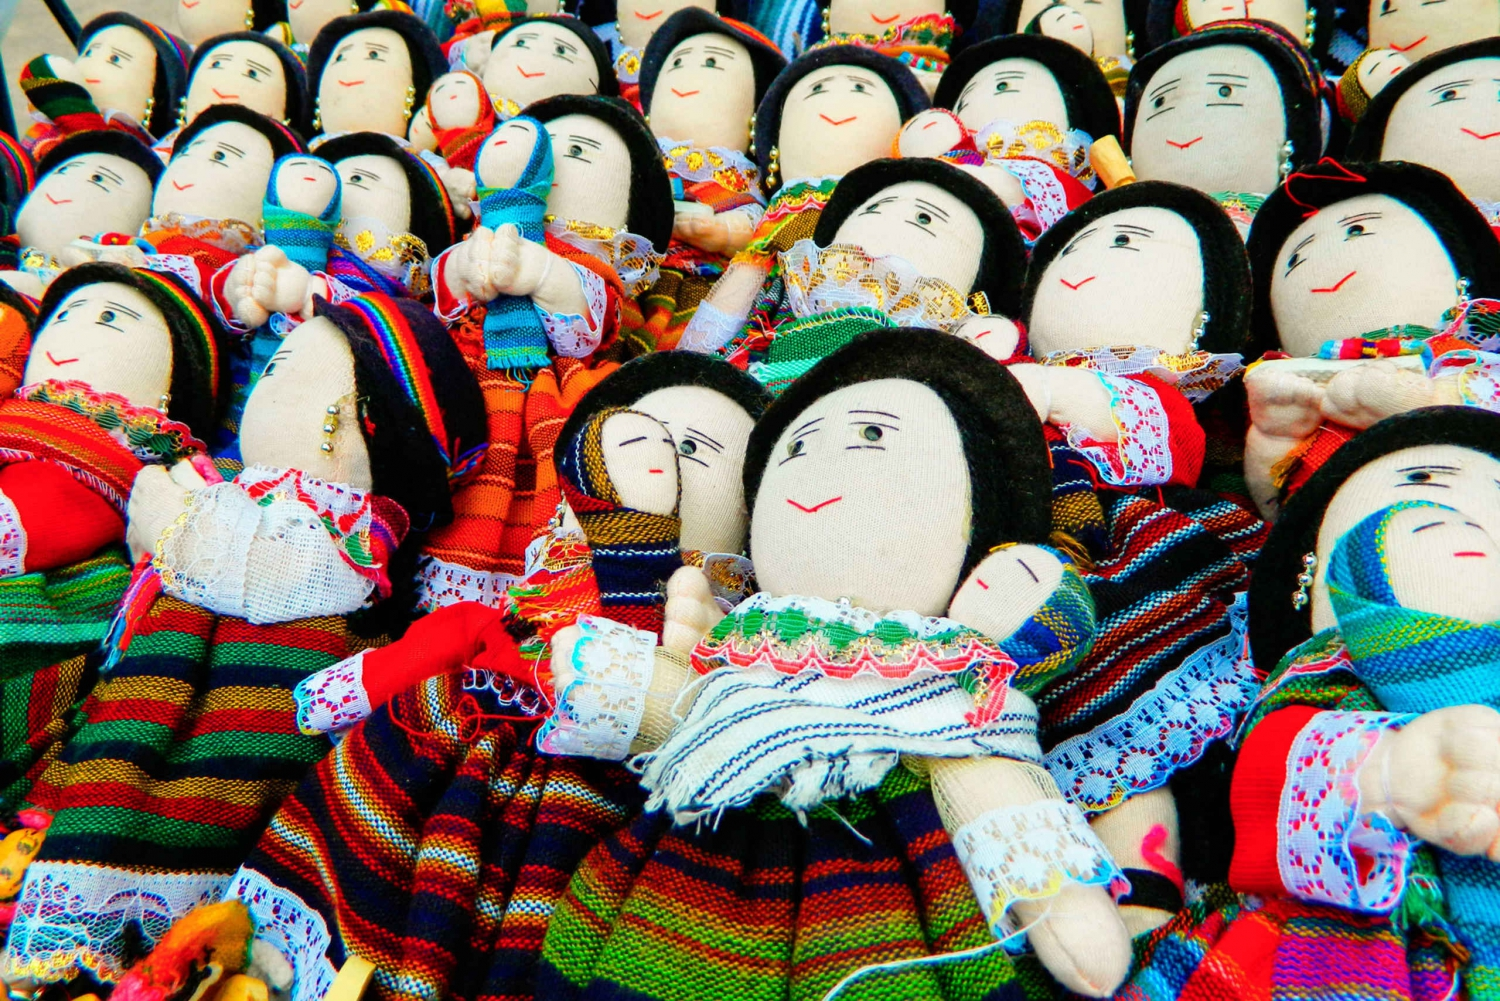 Otavalo and Imbabura Sightseeing Tour from Quito